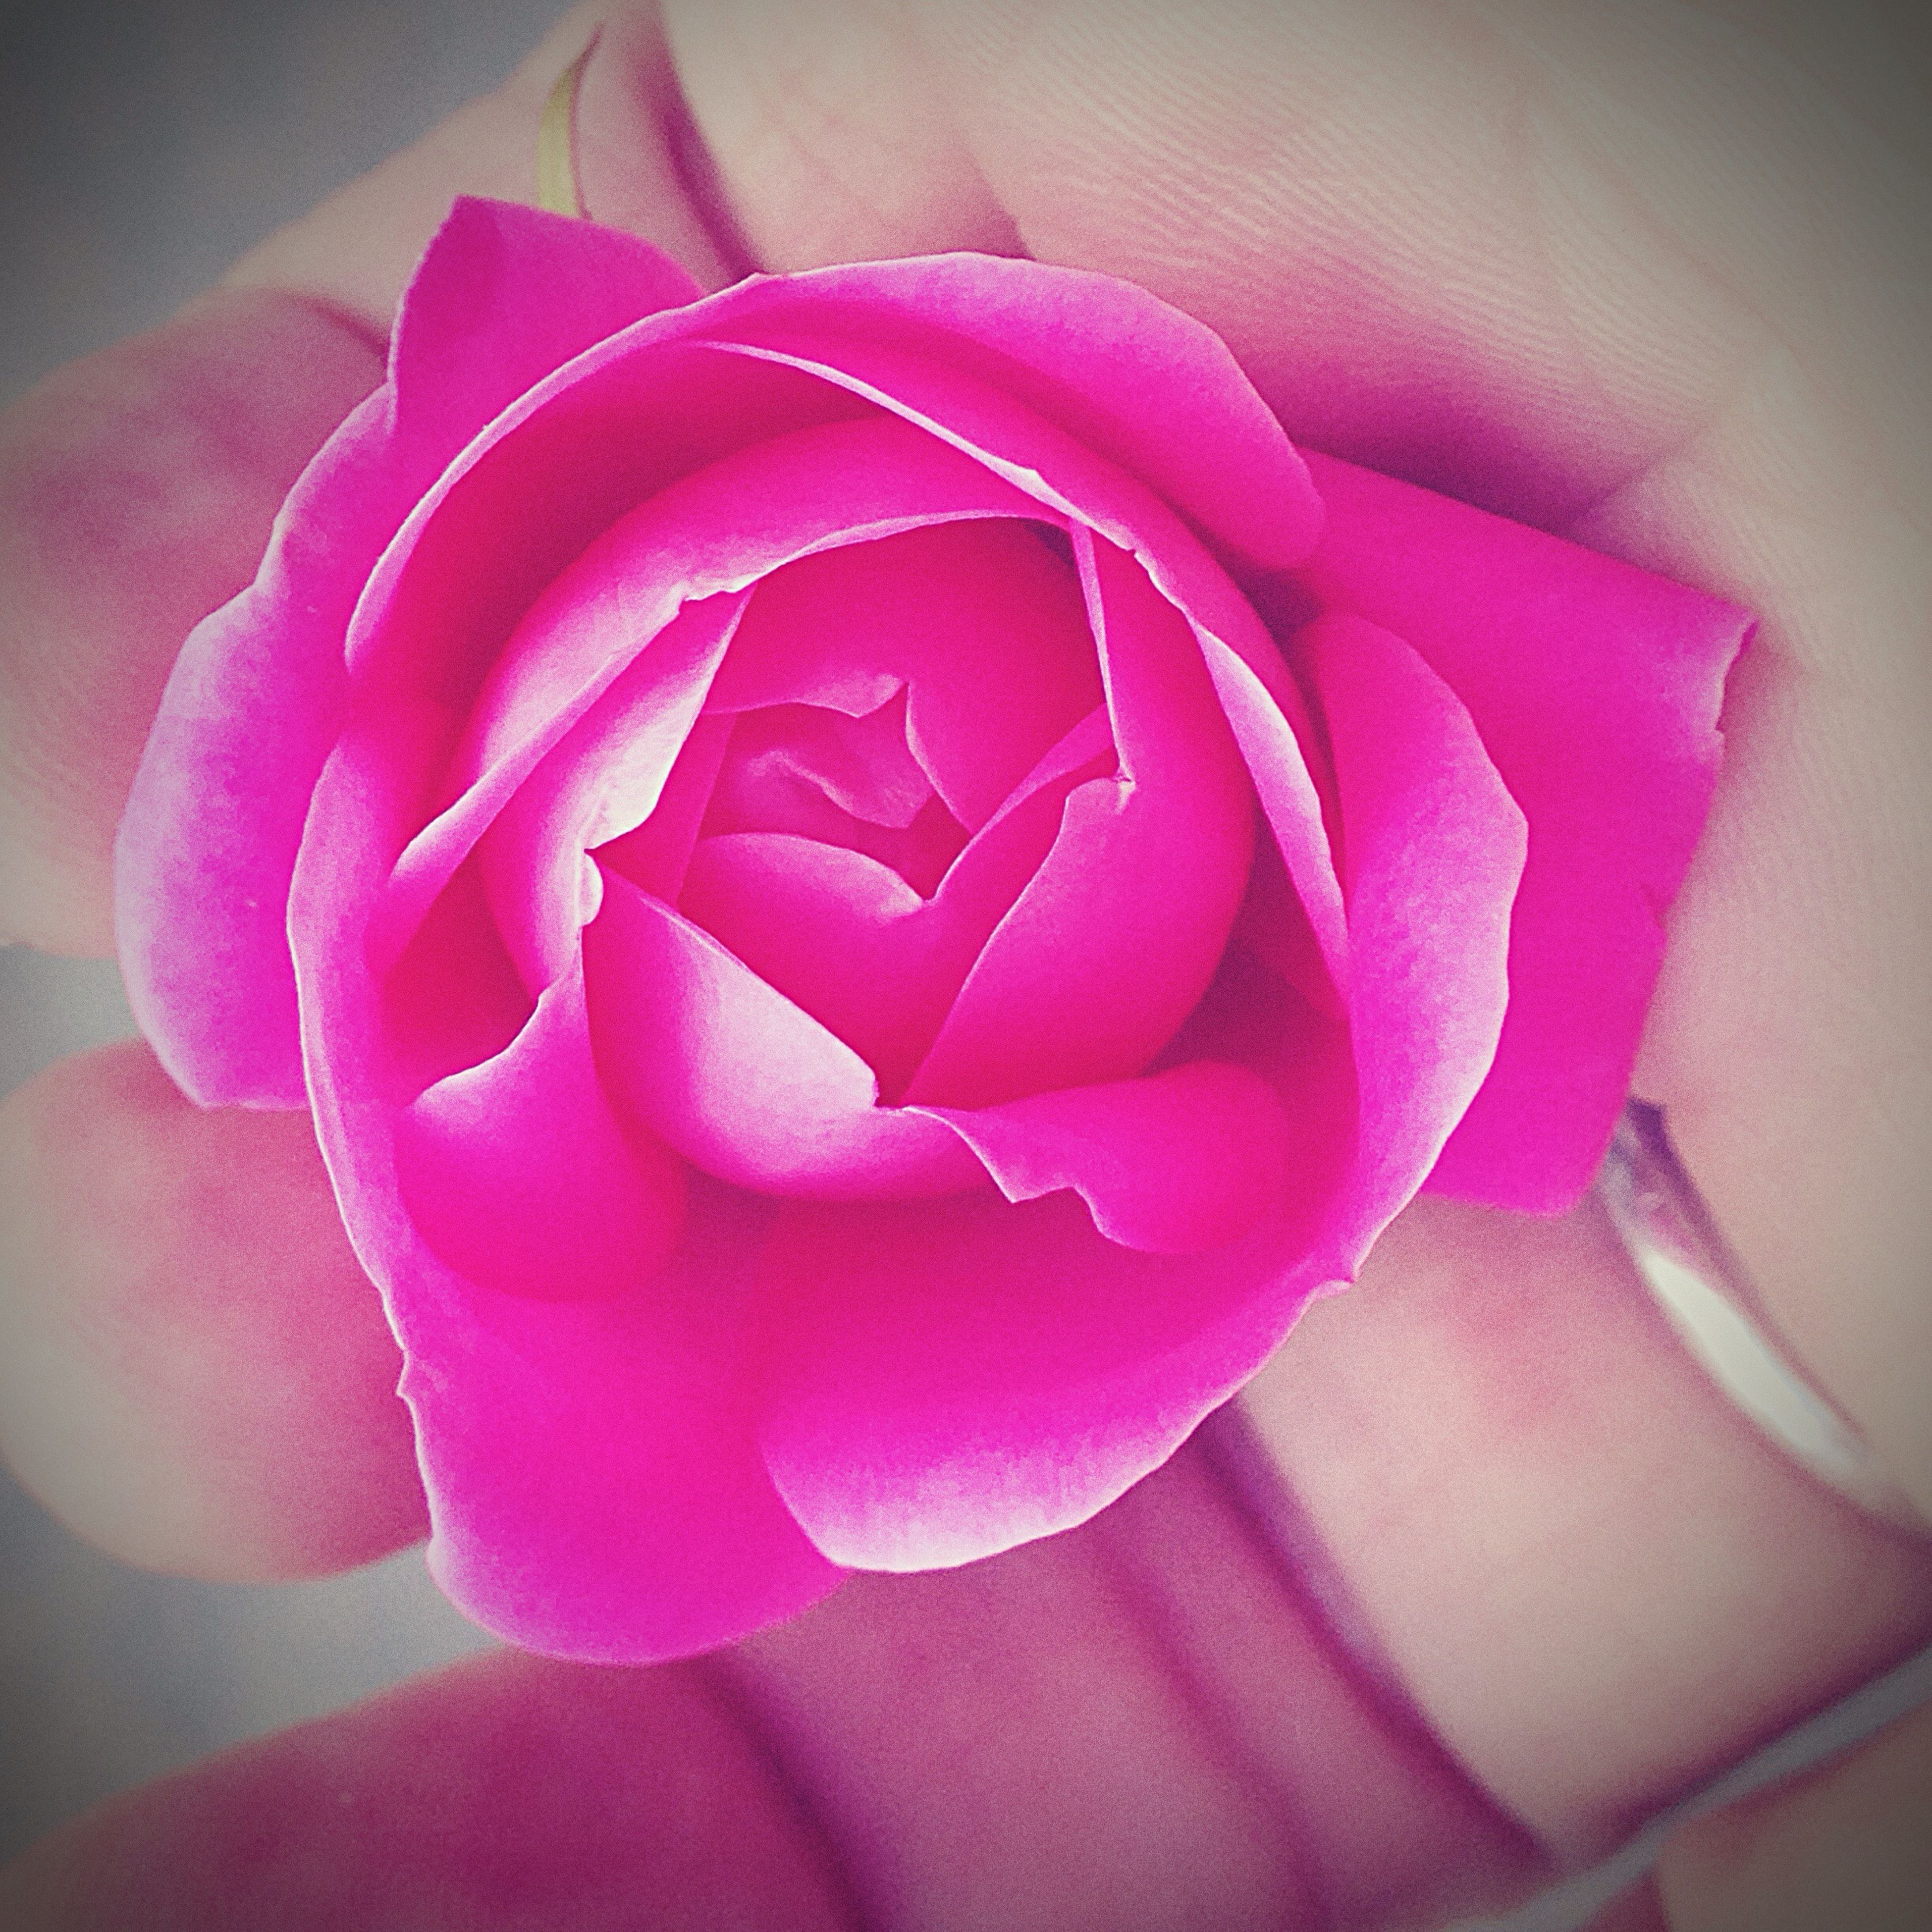 flower, indoors, pink color, petal, close-up, rose - flower, flower head, fragility, freshness, rose, love, red, pink, high angle view, home interior, purple, single flower, wall - building feature, focus on foreground, no people